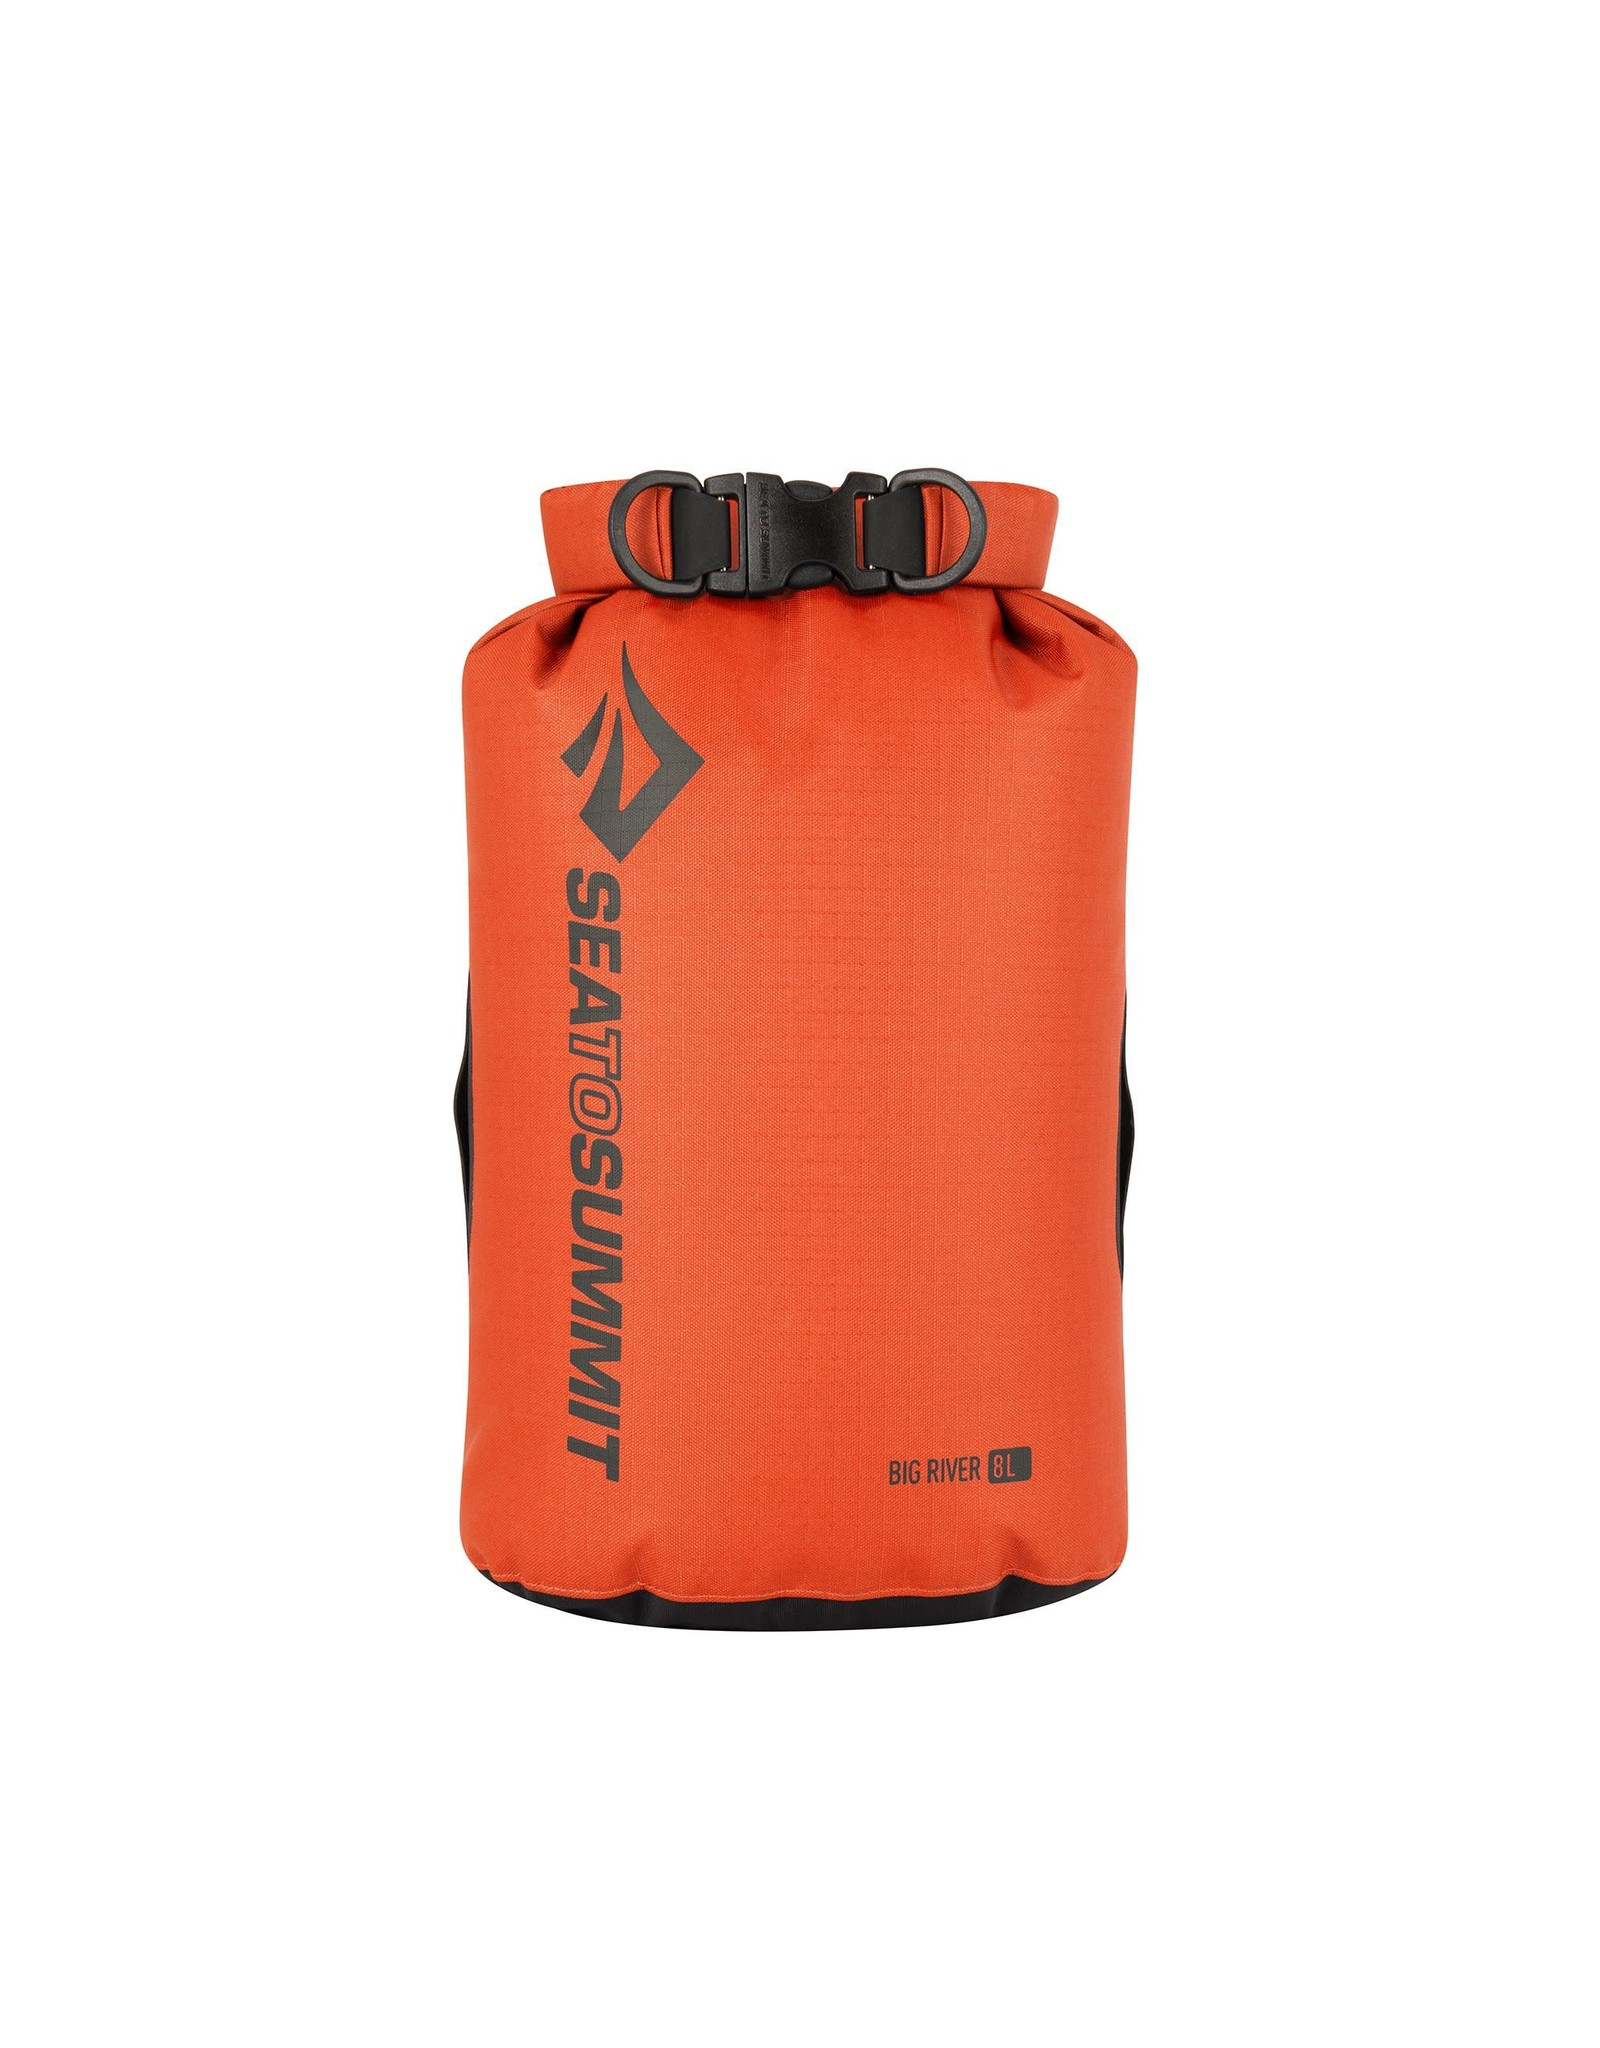 Sea to Summit Big River Dry Bag